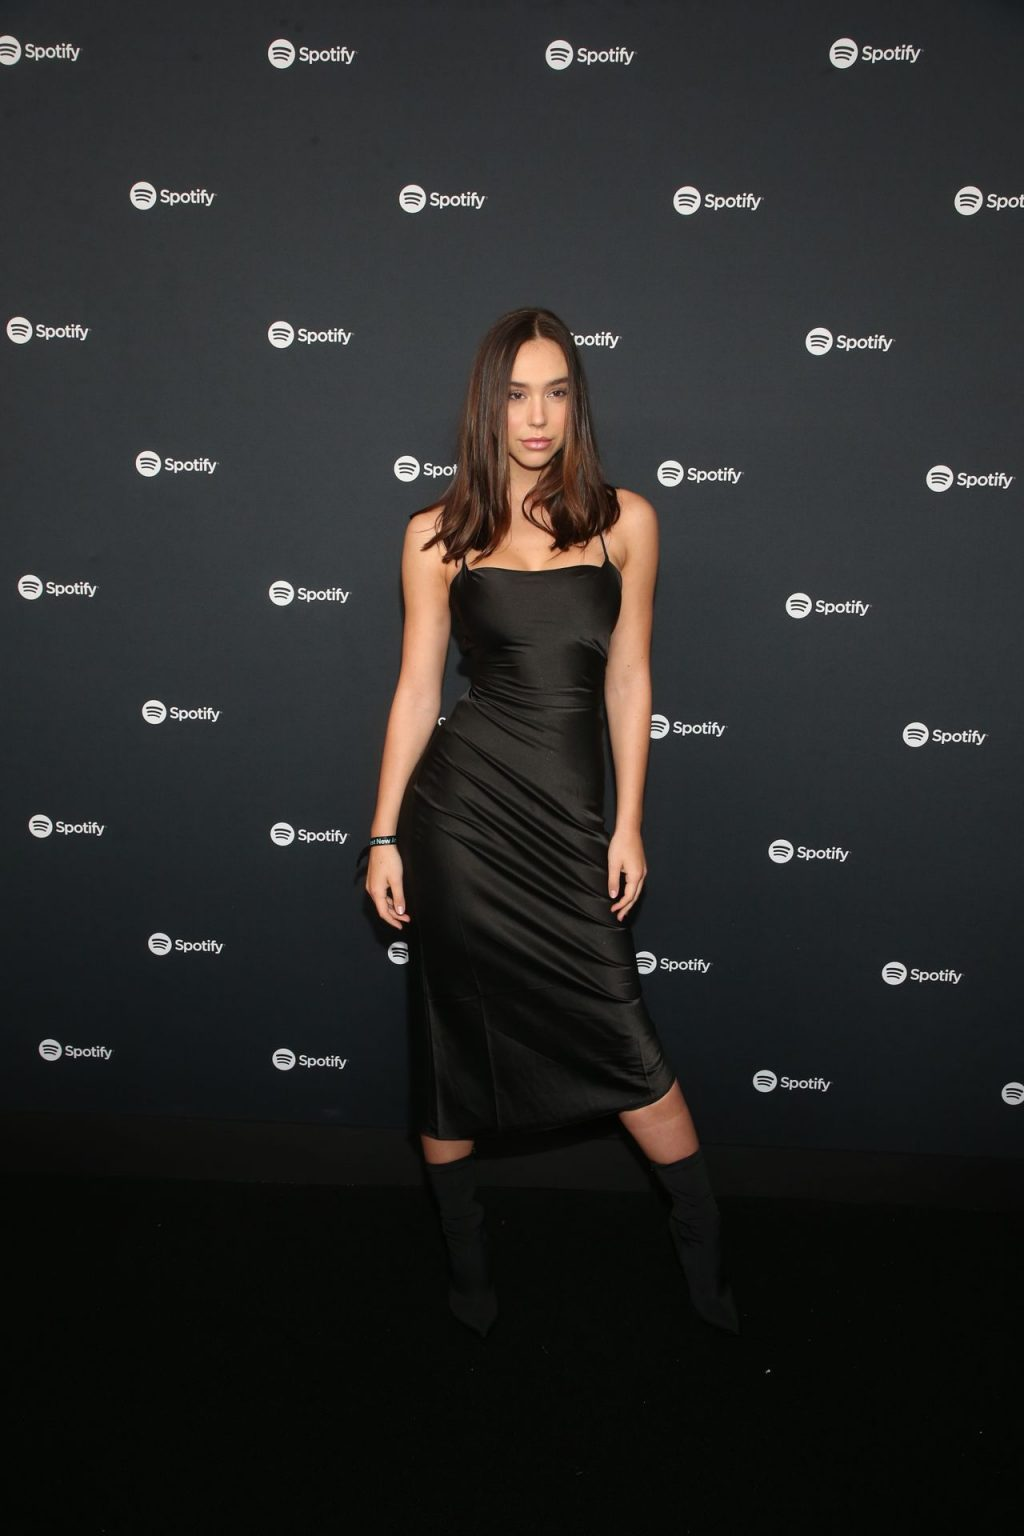 Alexis Ren Shows Off Her Tits at the Spotify Best New Artist Party (18 Photos)